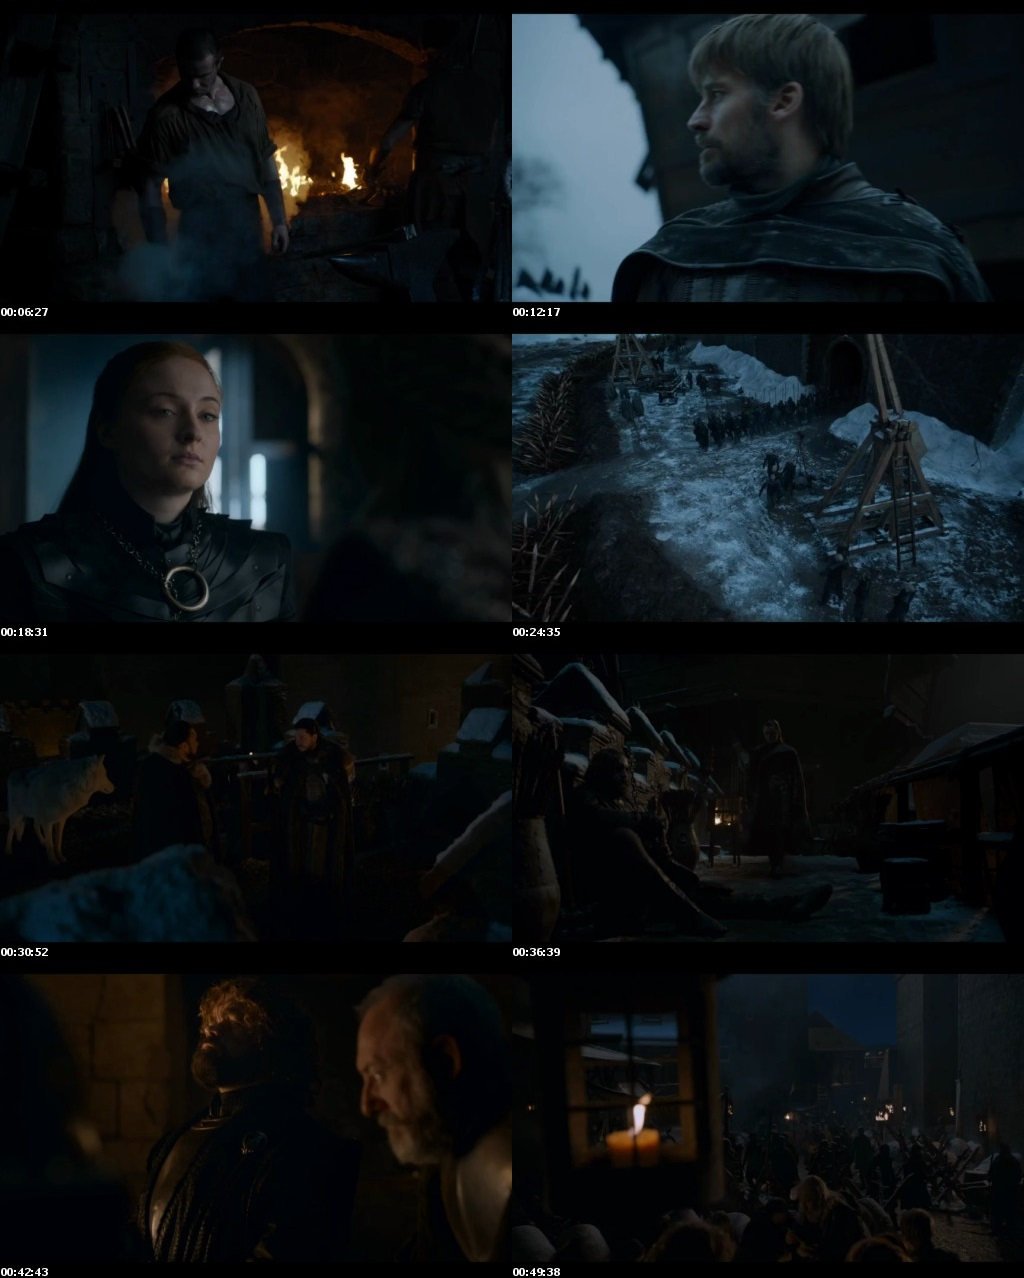 Watch Online Free Game of Thrones S08E02 Full Episode Game of Thrones (S08E02) Season 8 Episode 2 Full English Download 720p 480p